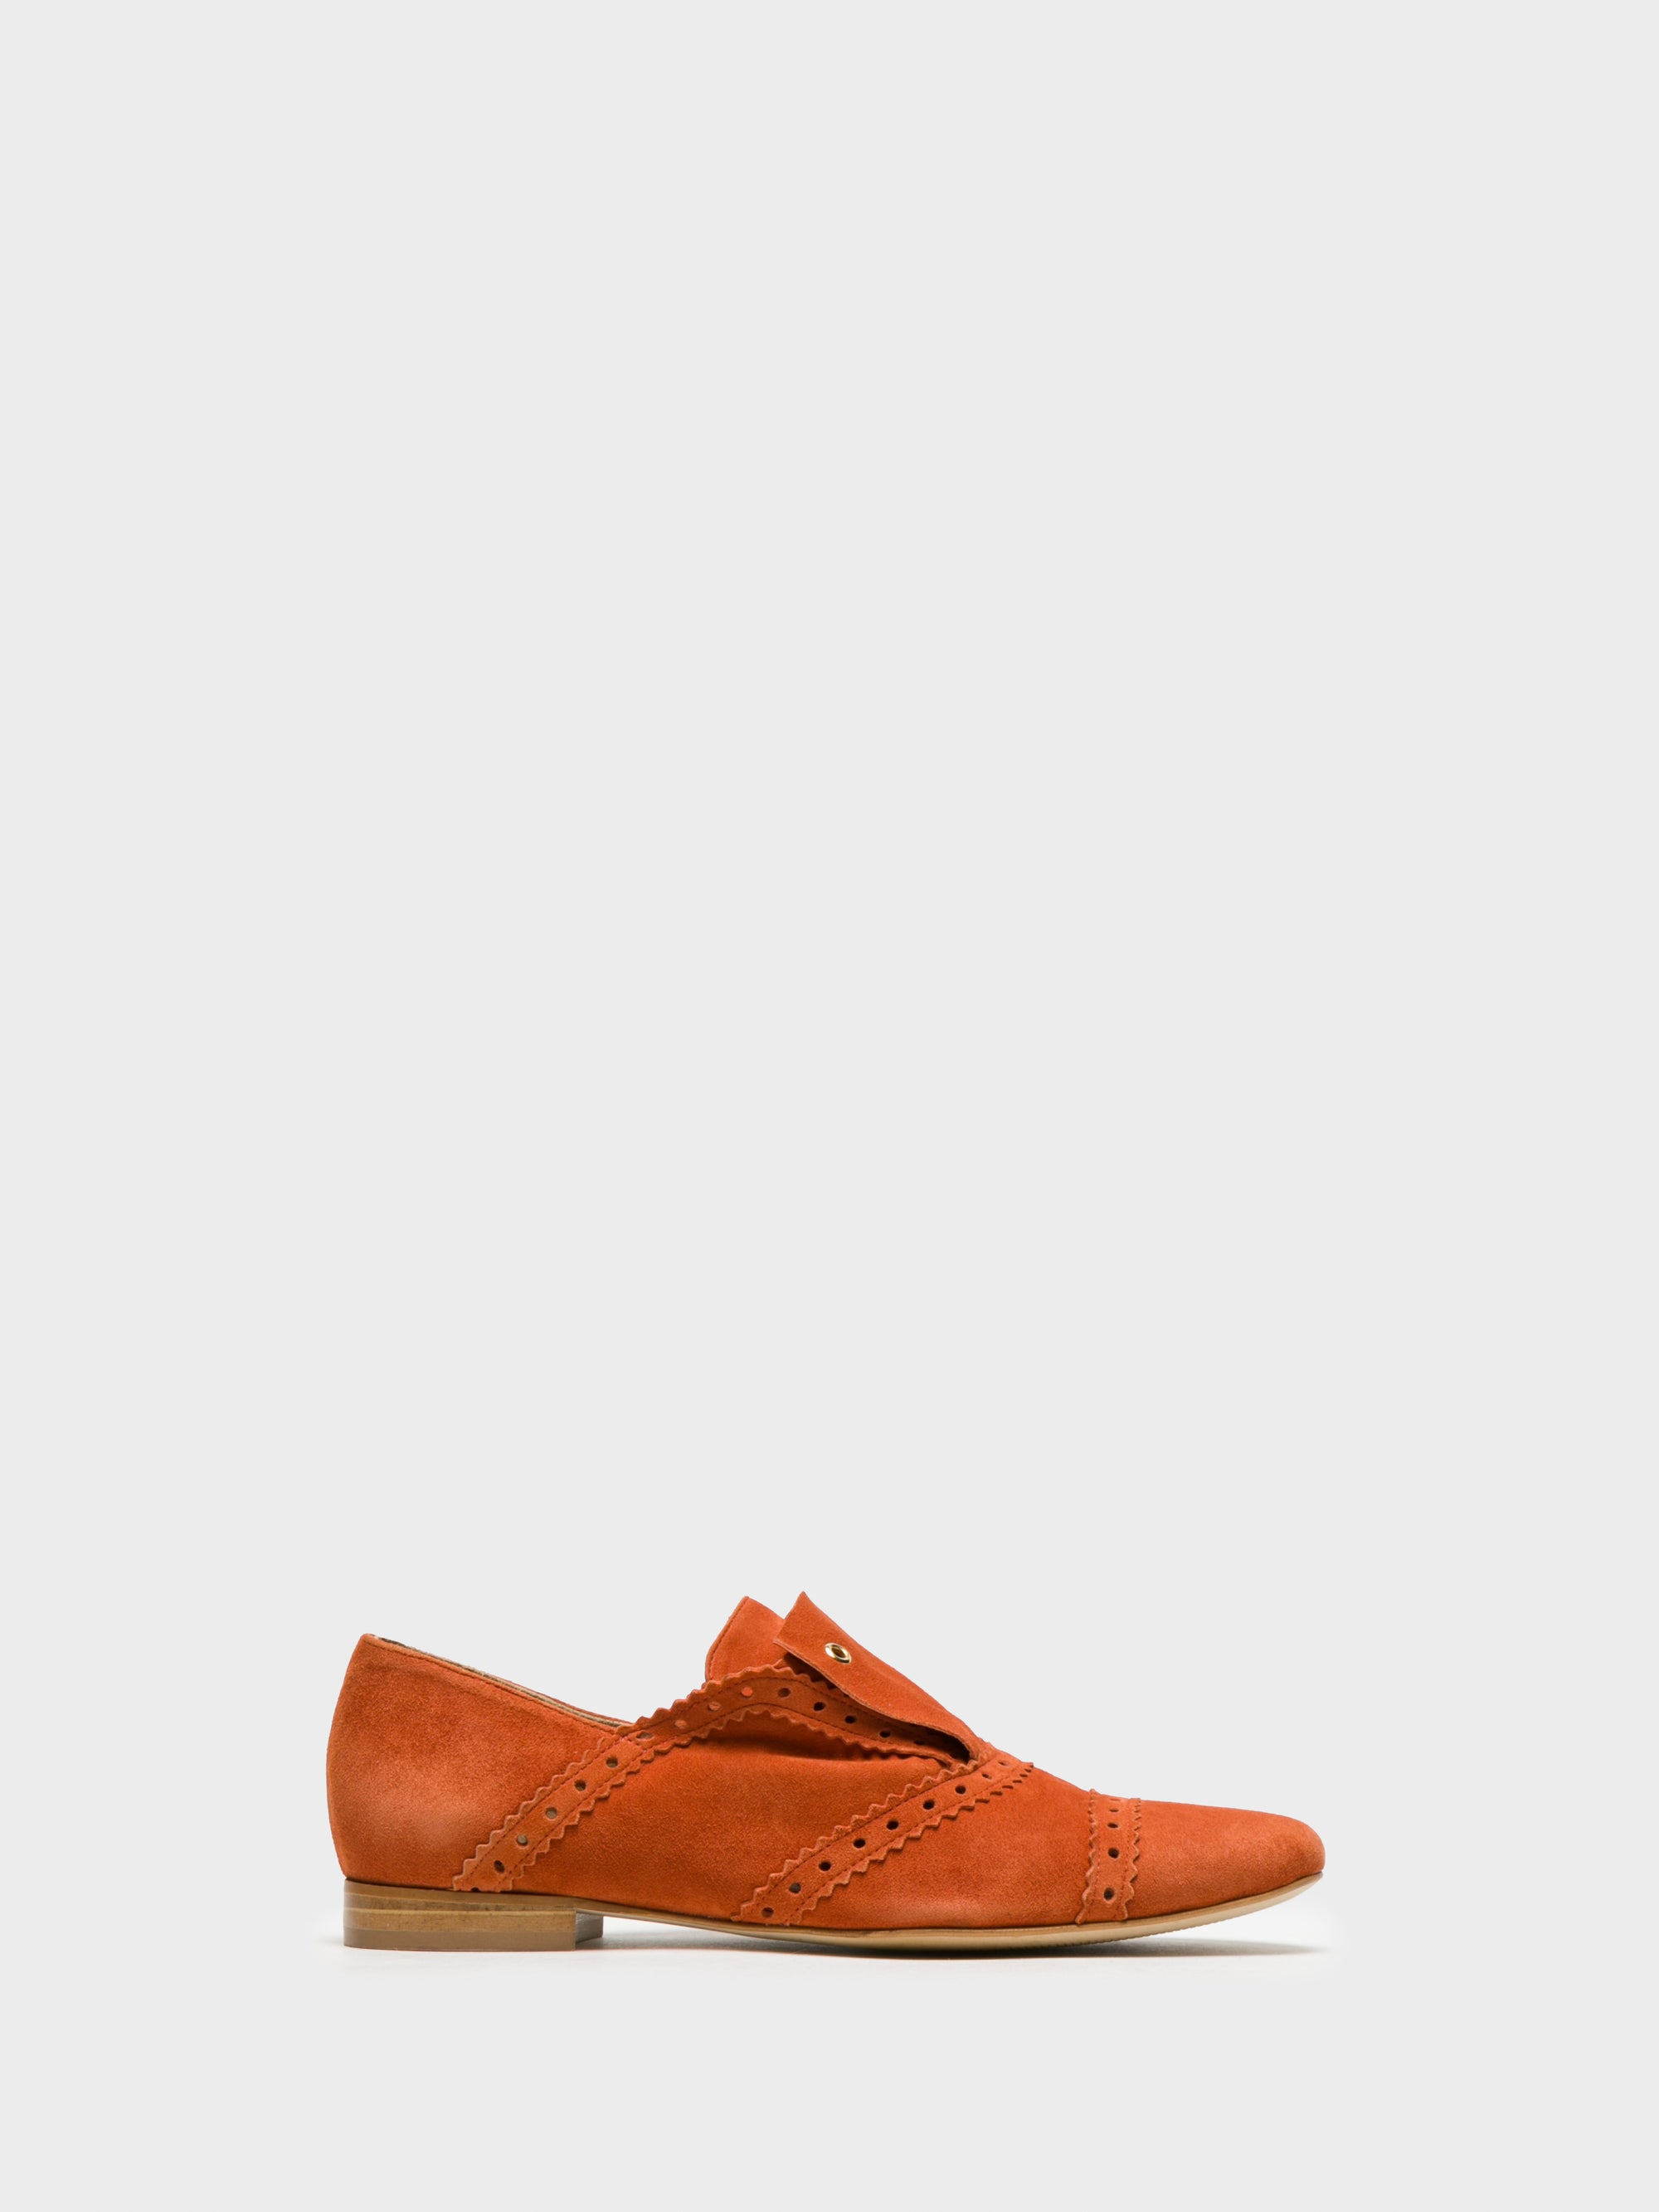 JJ Heitor Flache Schuhe in Orange